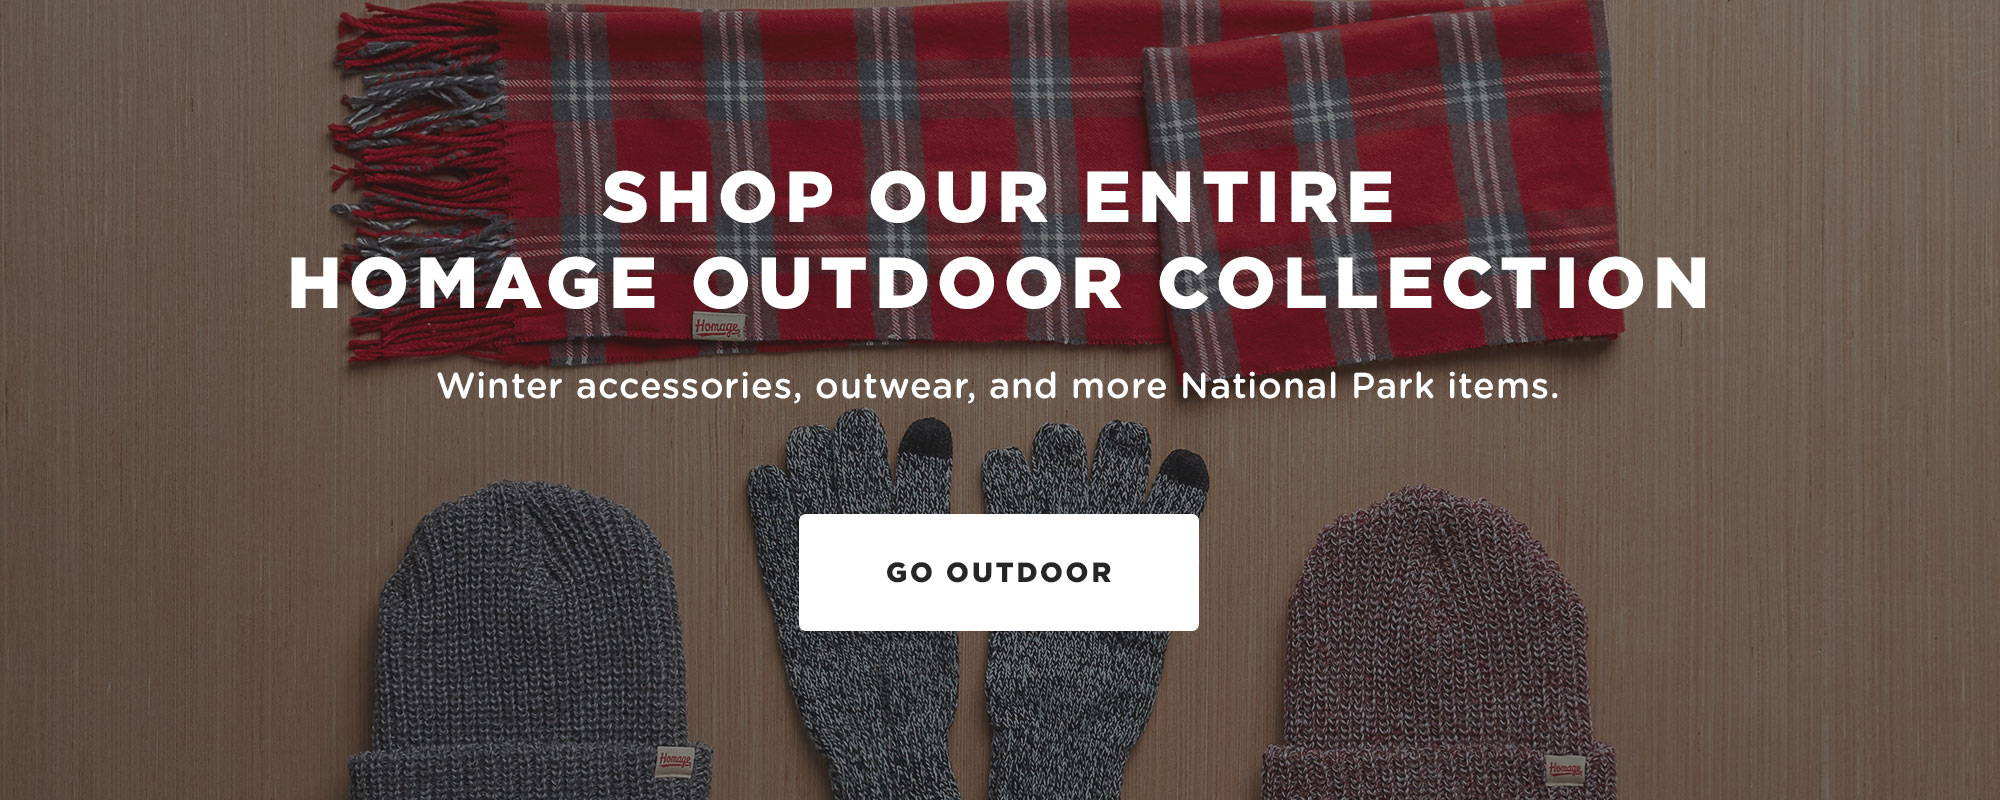 Shop our entire HOMAGE Outdoor Collection